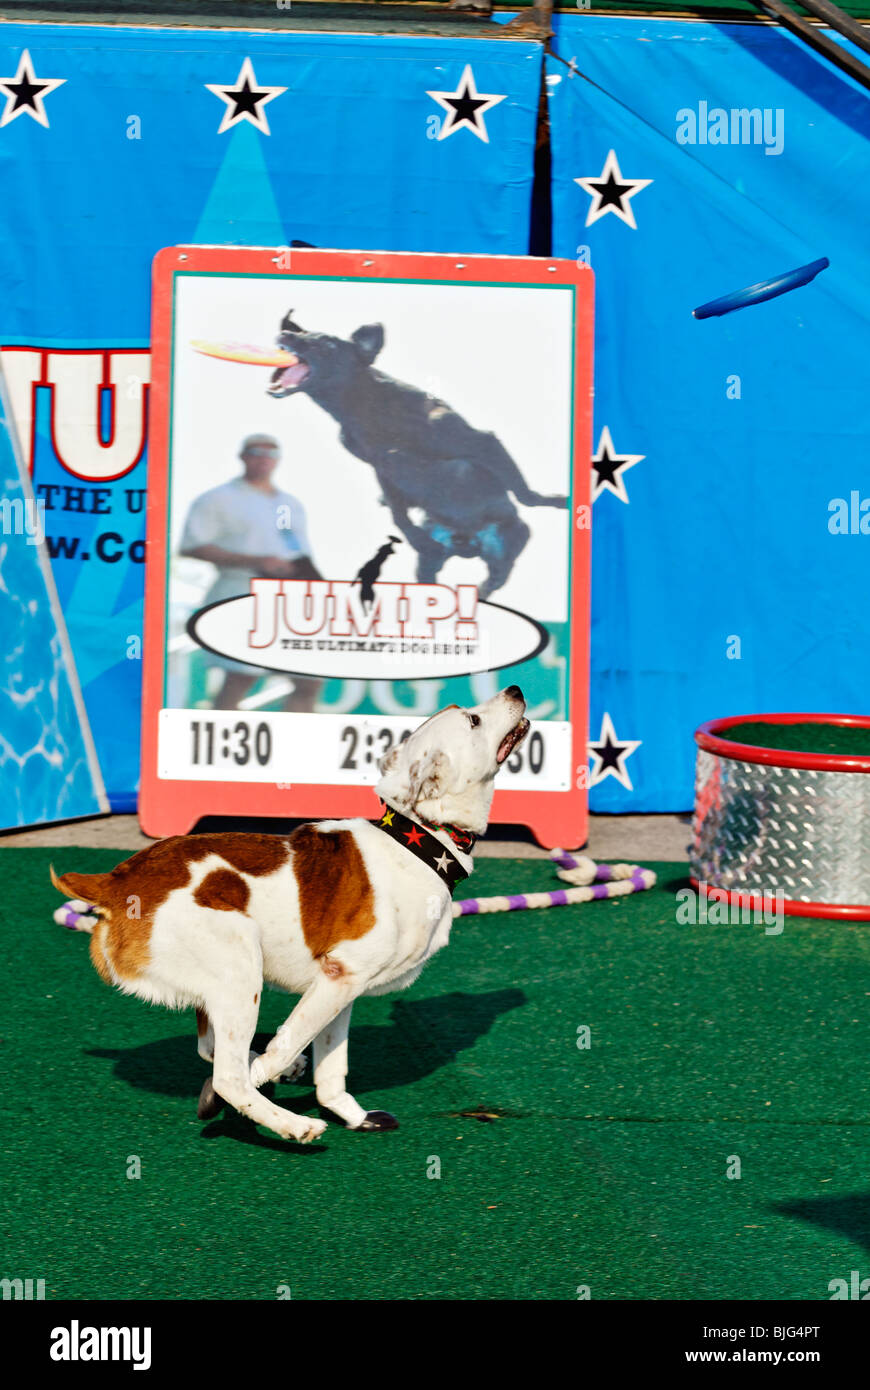 Demonstration of Trained Dog Running to Catch Flying Disc at the 2009 Kentucky State Fair in Louisville, Kentucky - Stock Image